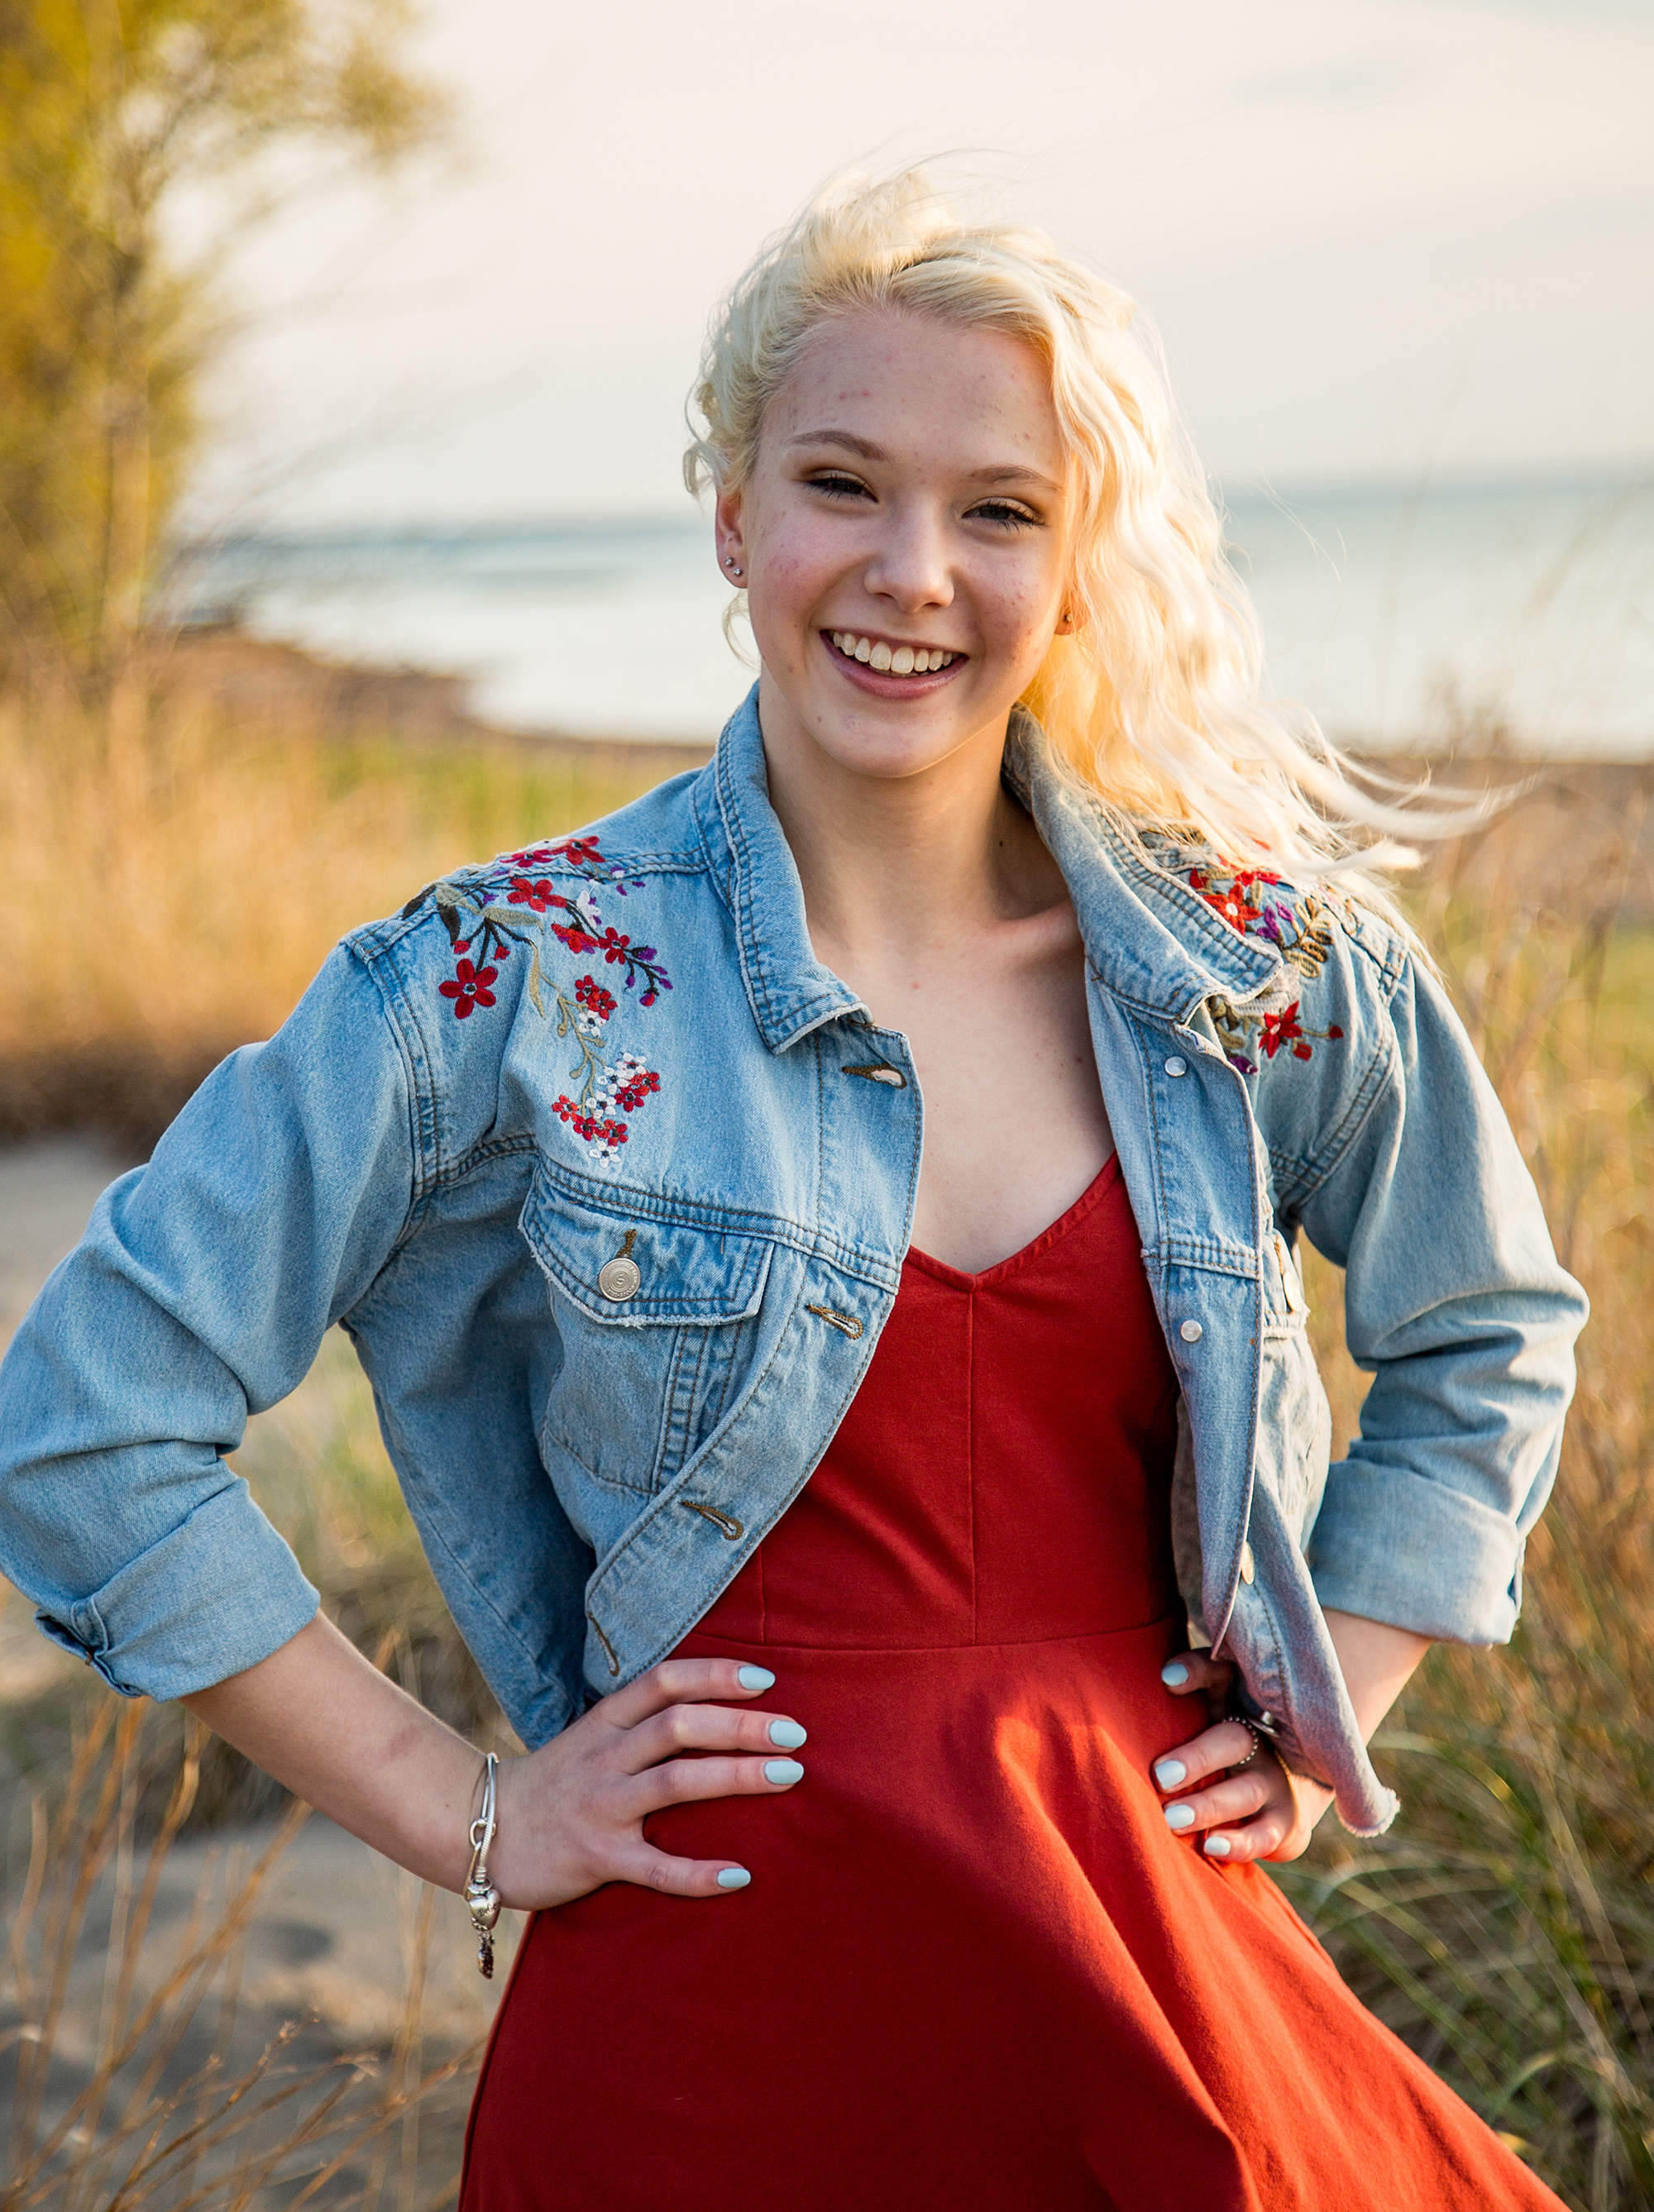 Laughing girl on the beach for Sweet Sixteen photos at Presque Isle State Park